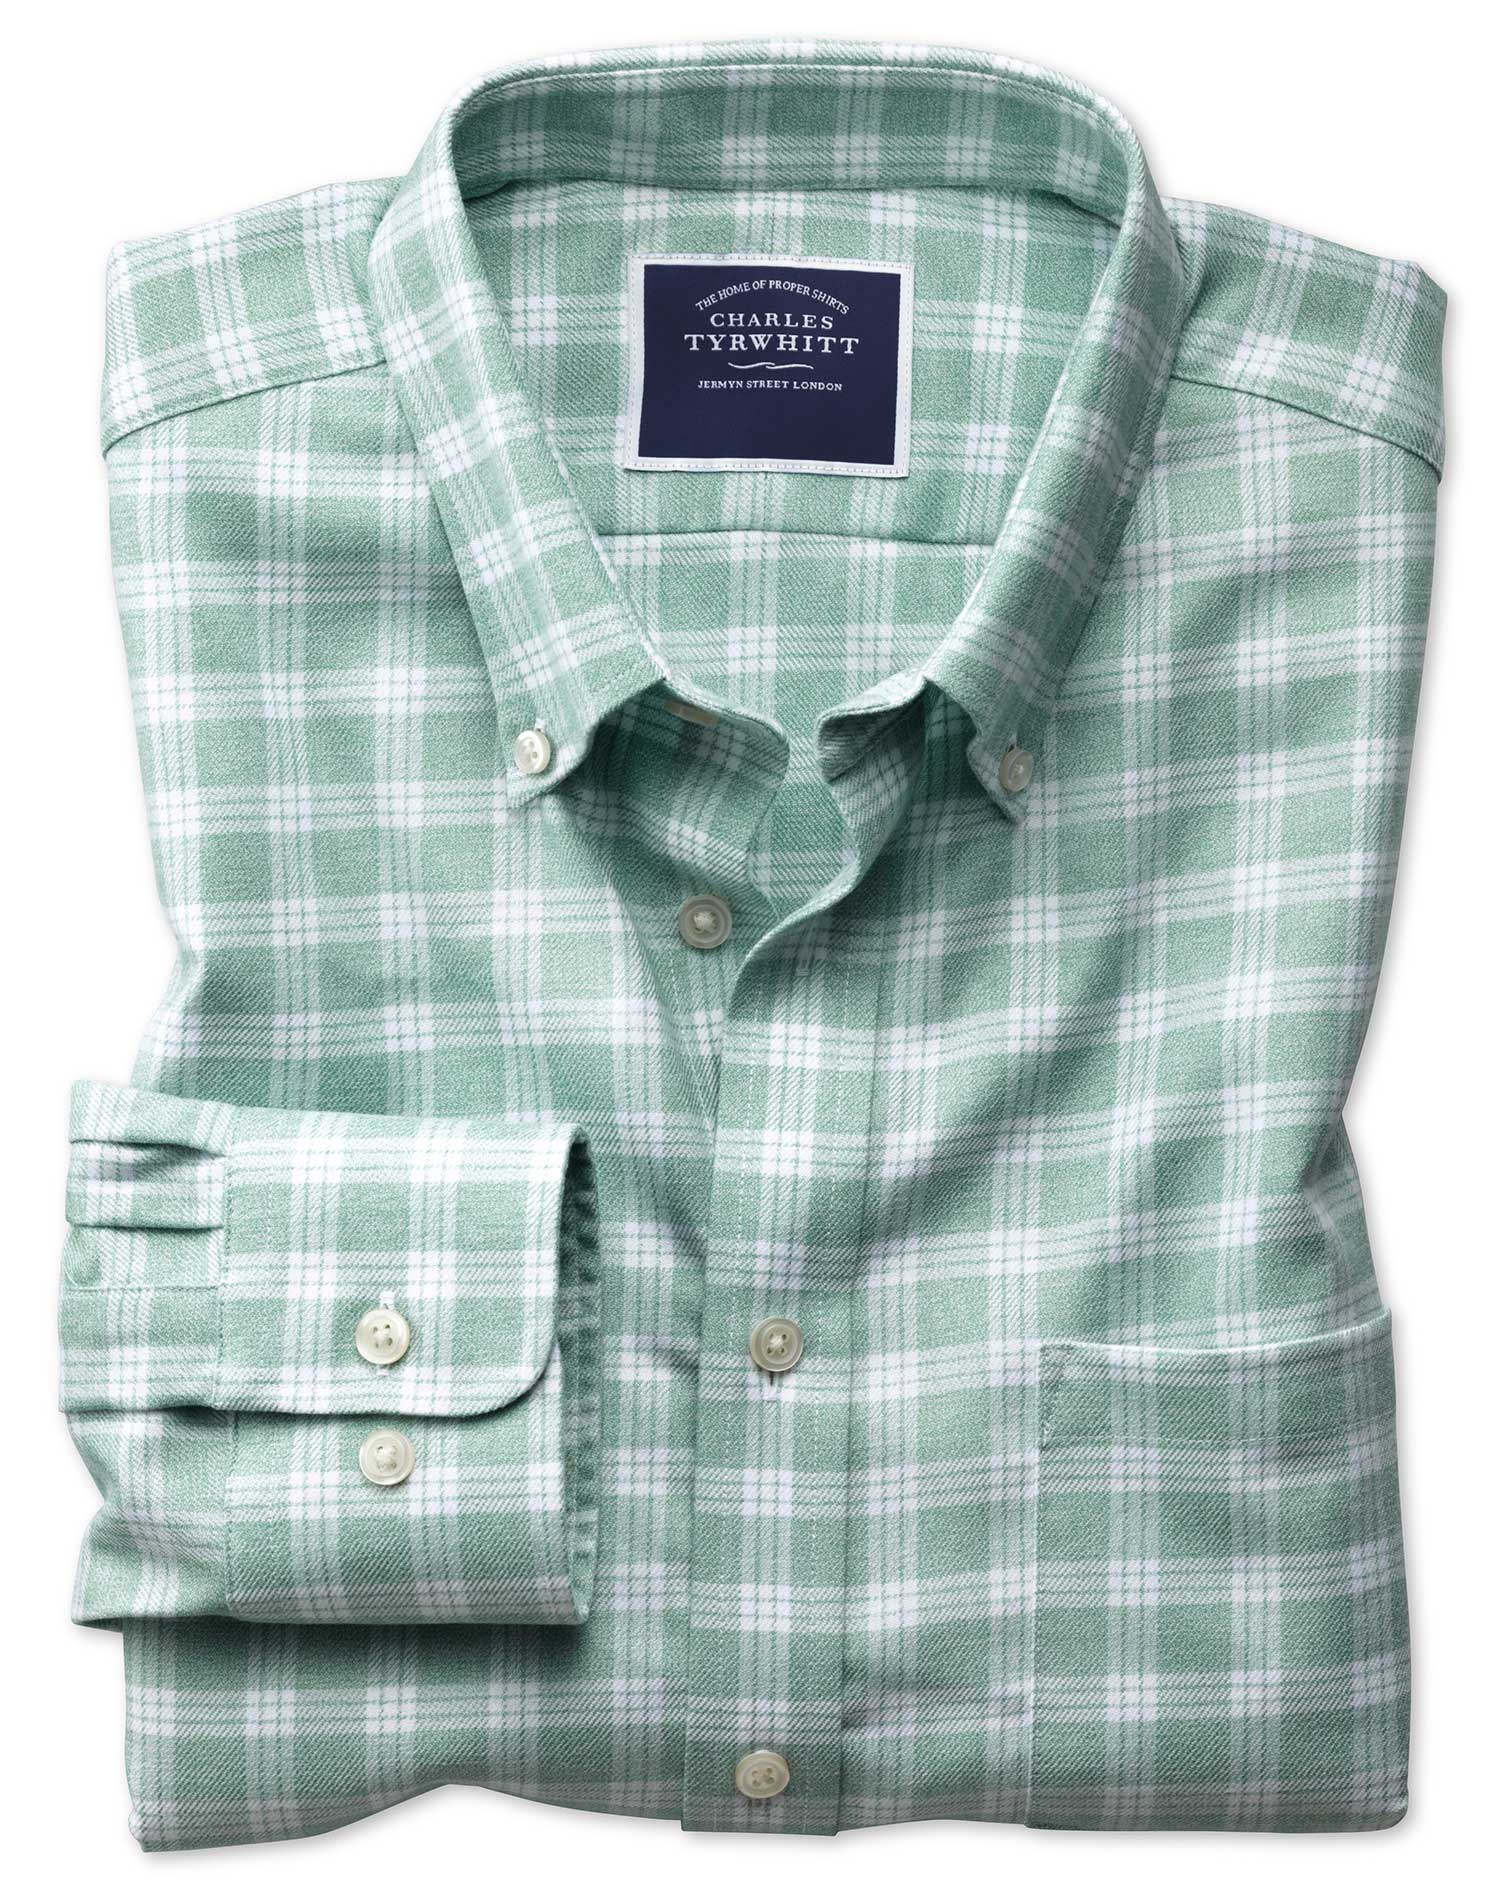 slim fit button-down non-iron twill green and white cotton casual shirt single cuff size xs by charles tyrwhitt